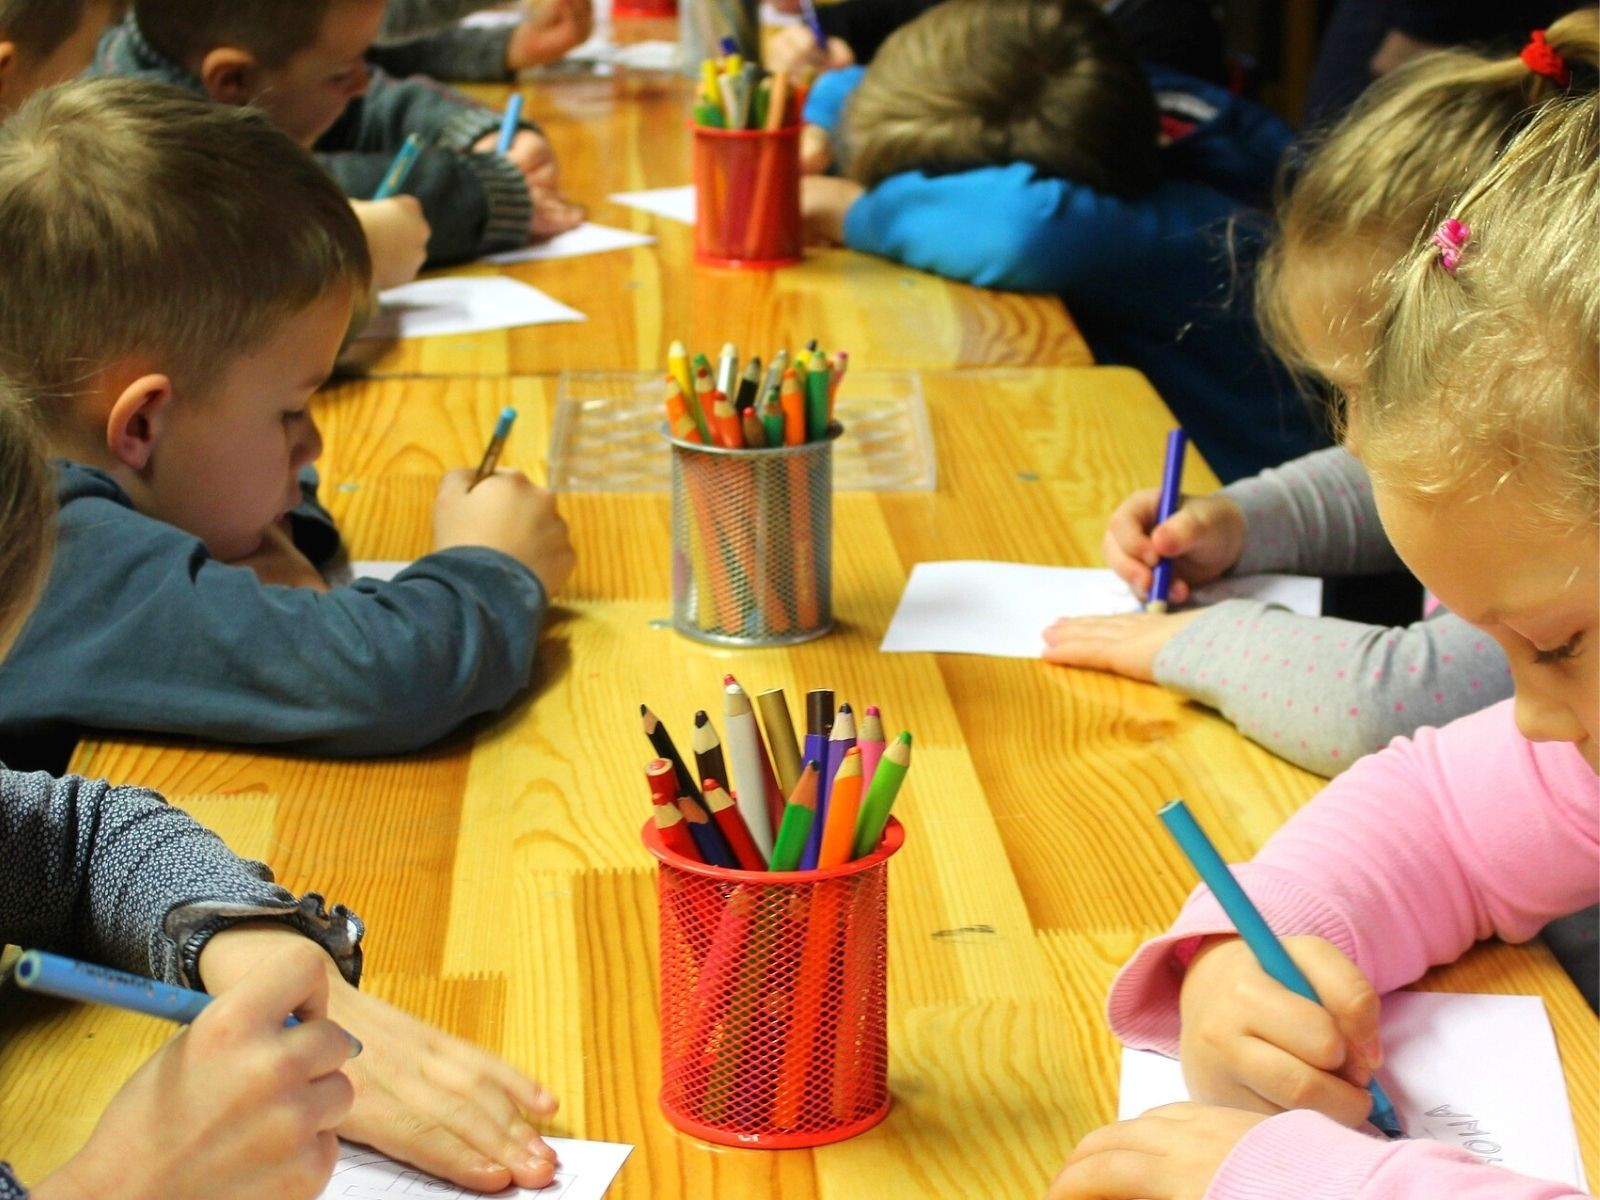 » Back to school: building resilience & supporting families in need